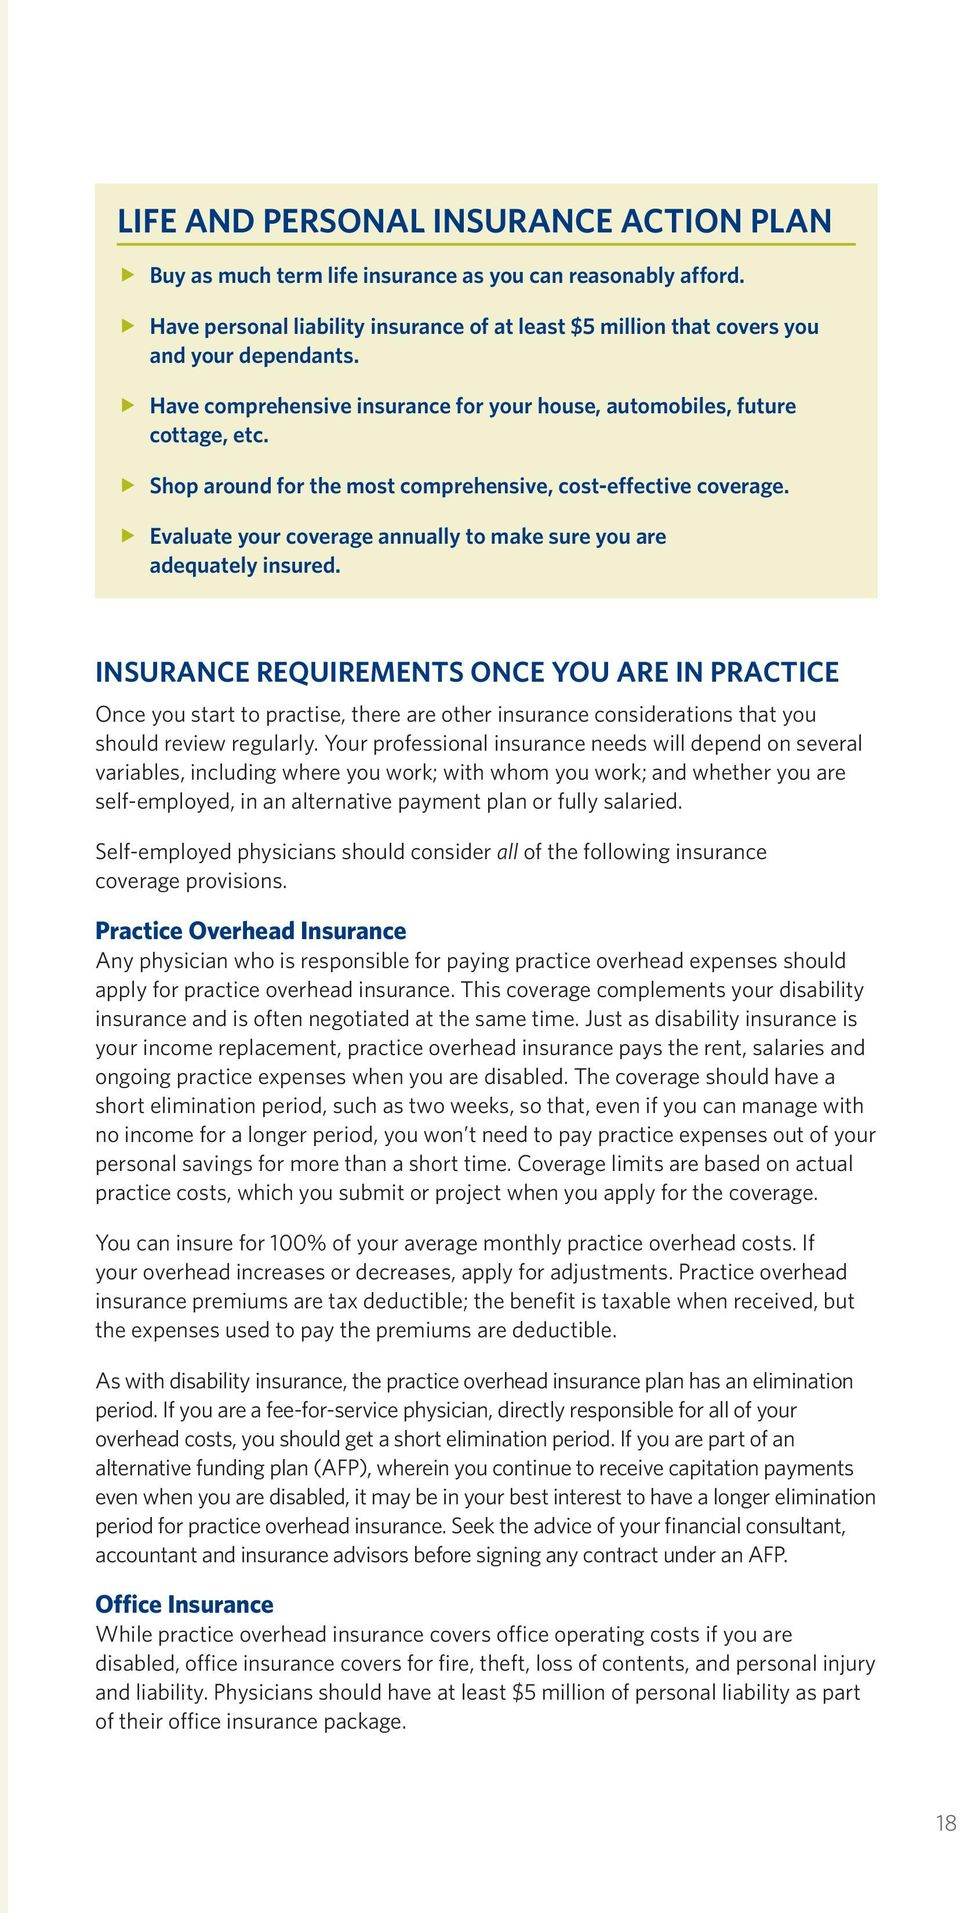 Evaluate your coverage annually to make sure you are adequately insured.